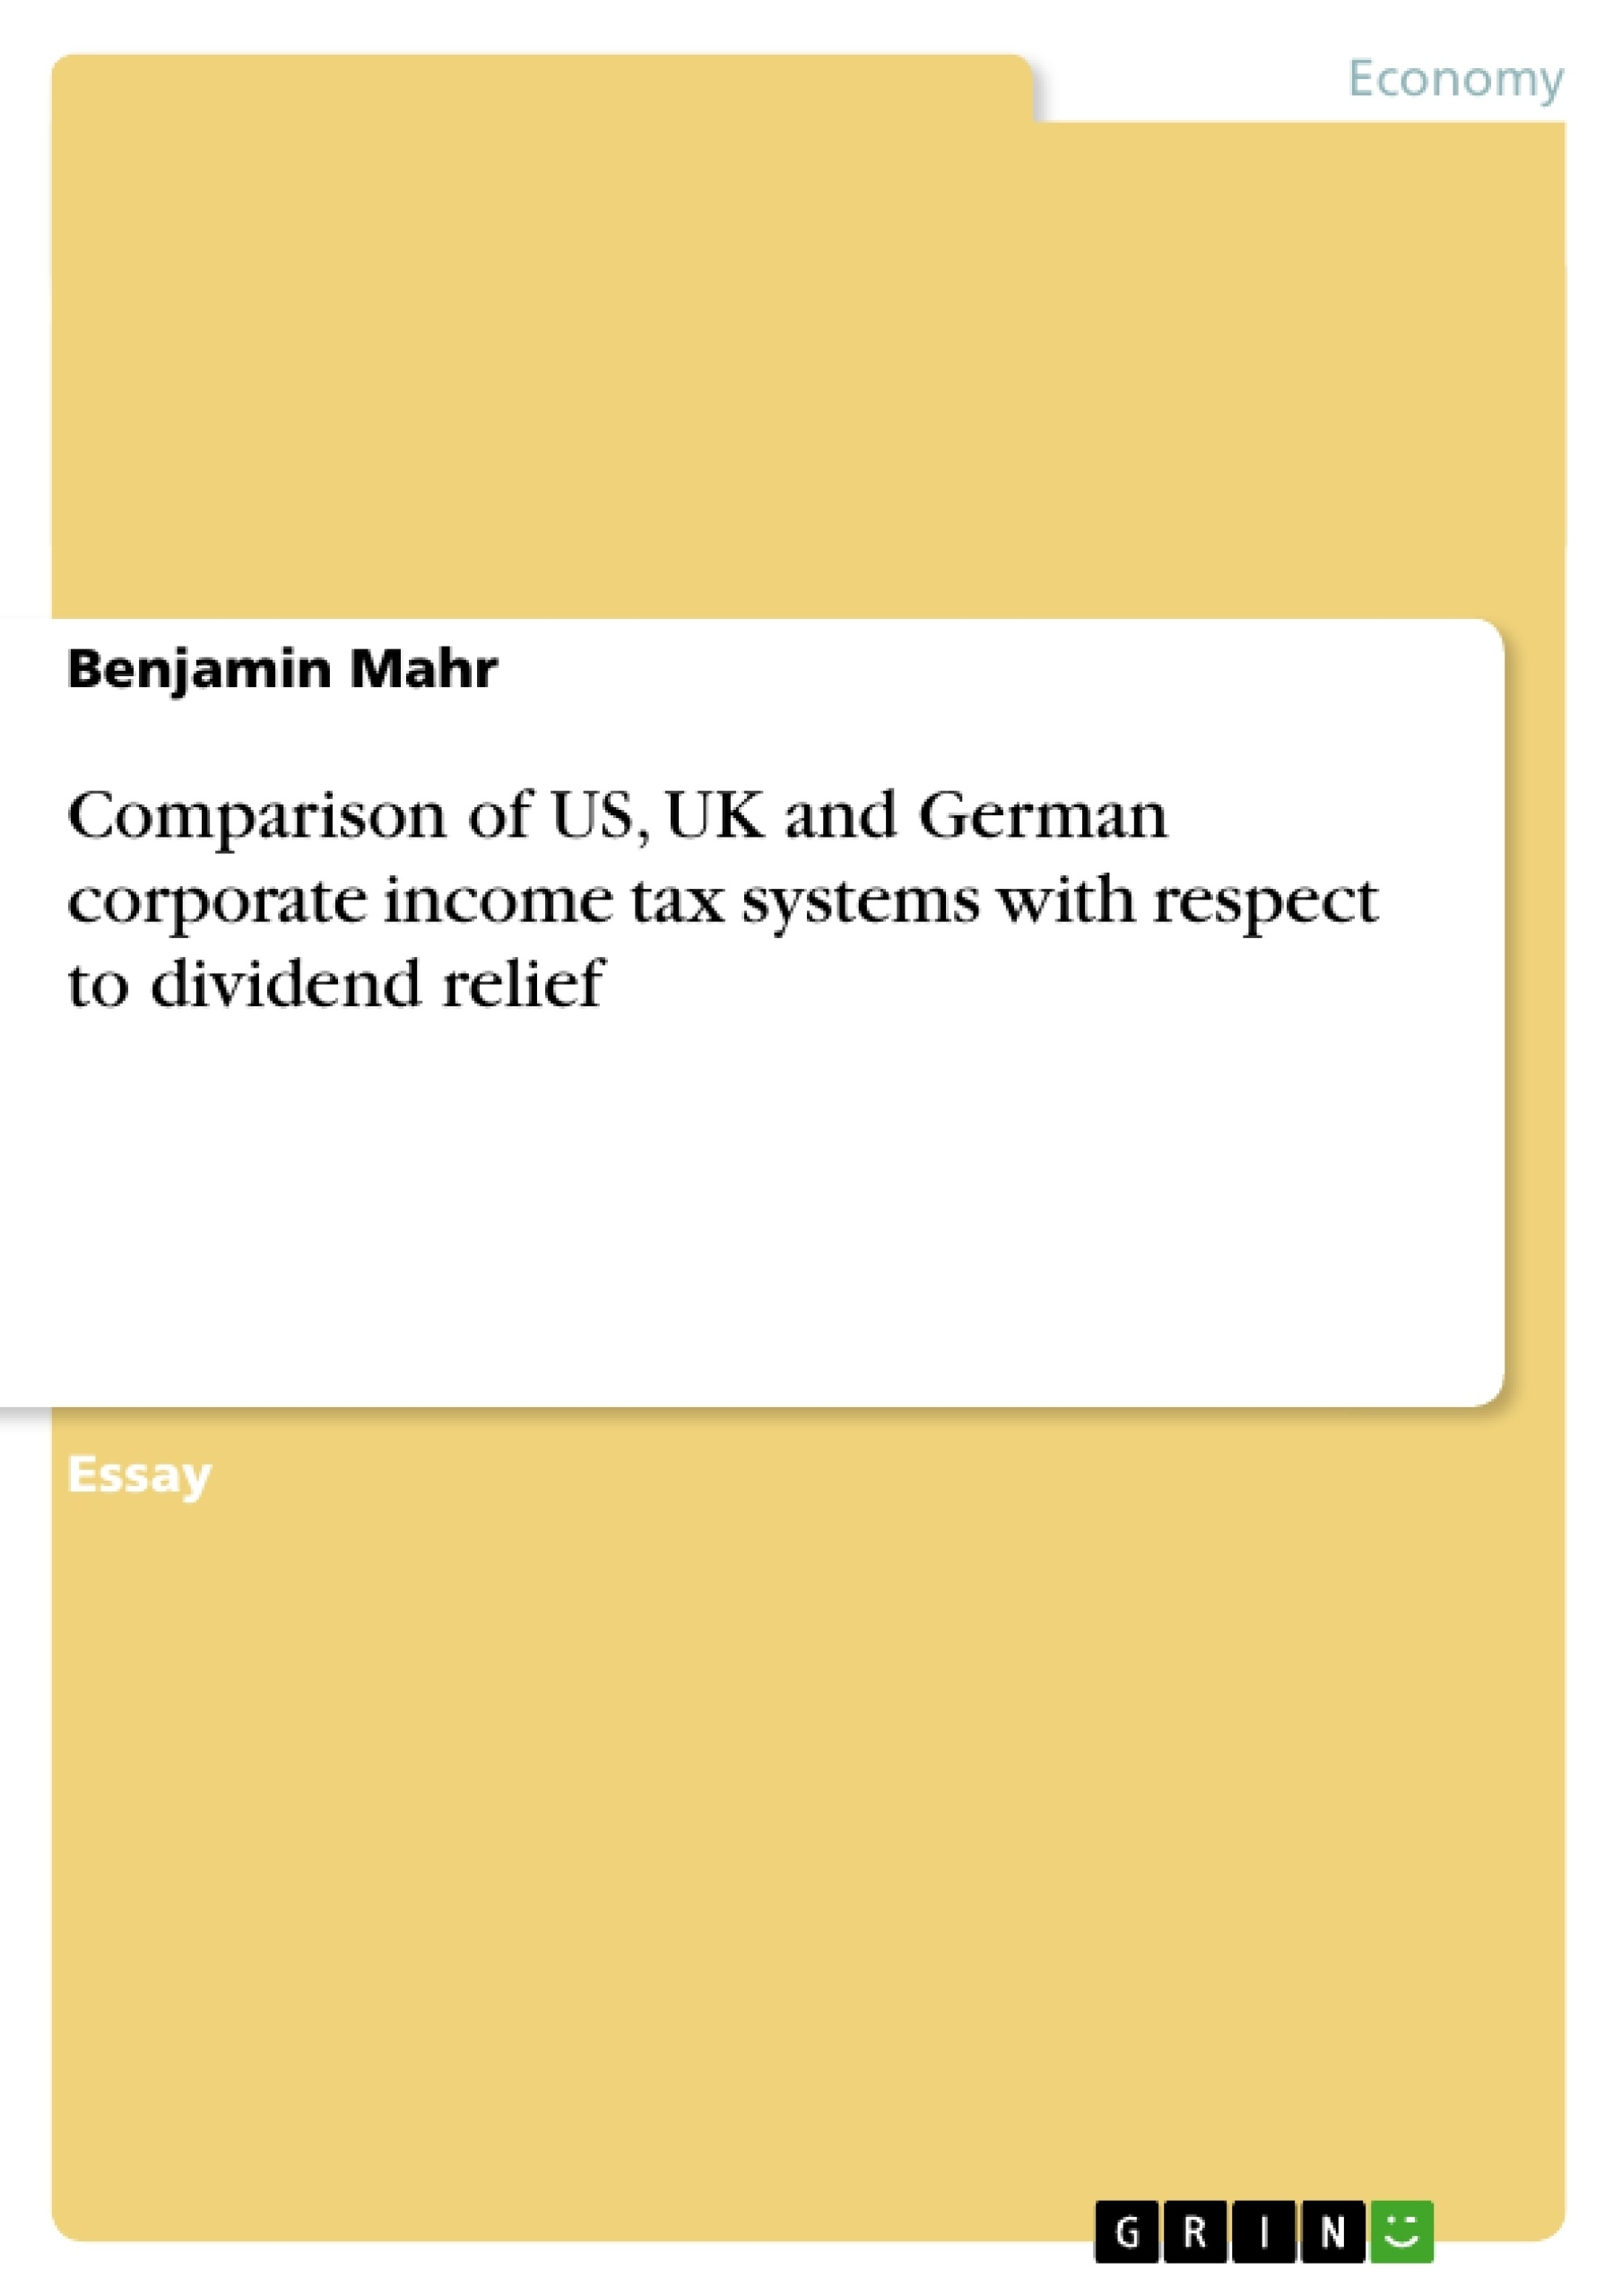 Title: Comparison of US, UK and German corporate income tax systems with respect to dividend relief